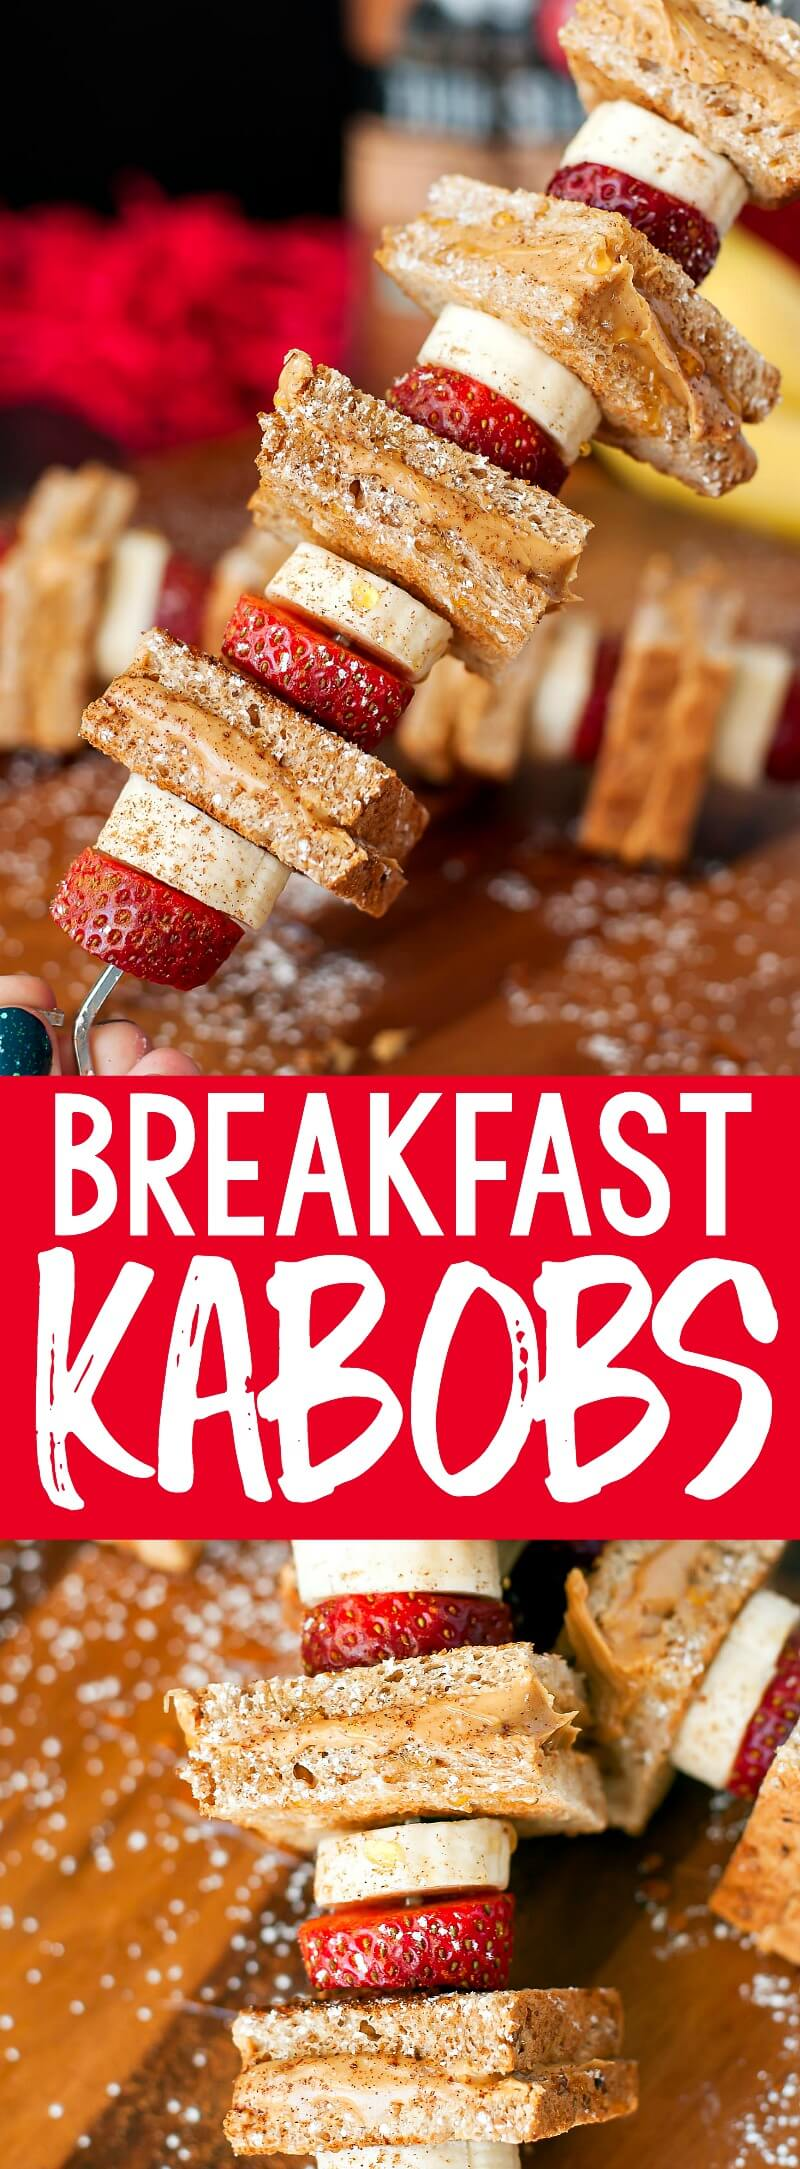 Whip up these Strawberry Banana Peanut Butter Toast on a Stick fora fun back to school breakfast! These sweet and savory breakfast kabobs are sure to be a hit! #kabobs #toast #breakfast #peanutbutter #banana #strawberry #kidfriendly #breakfast #snack